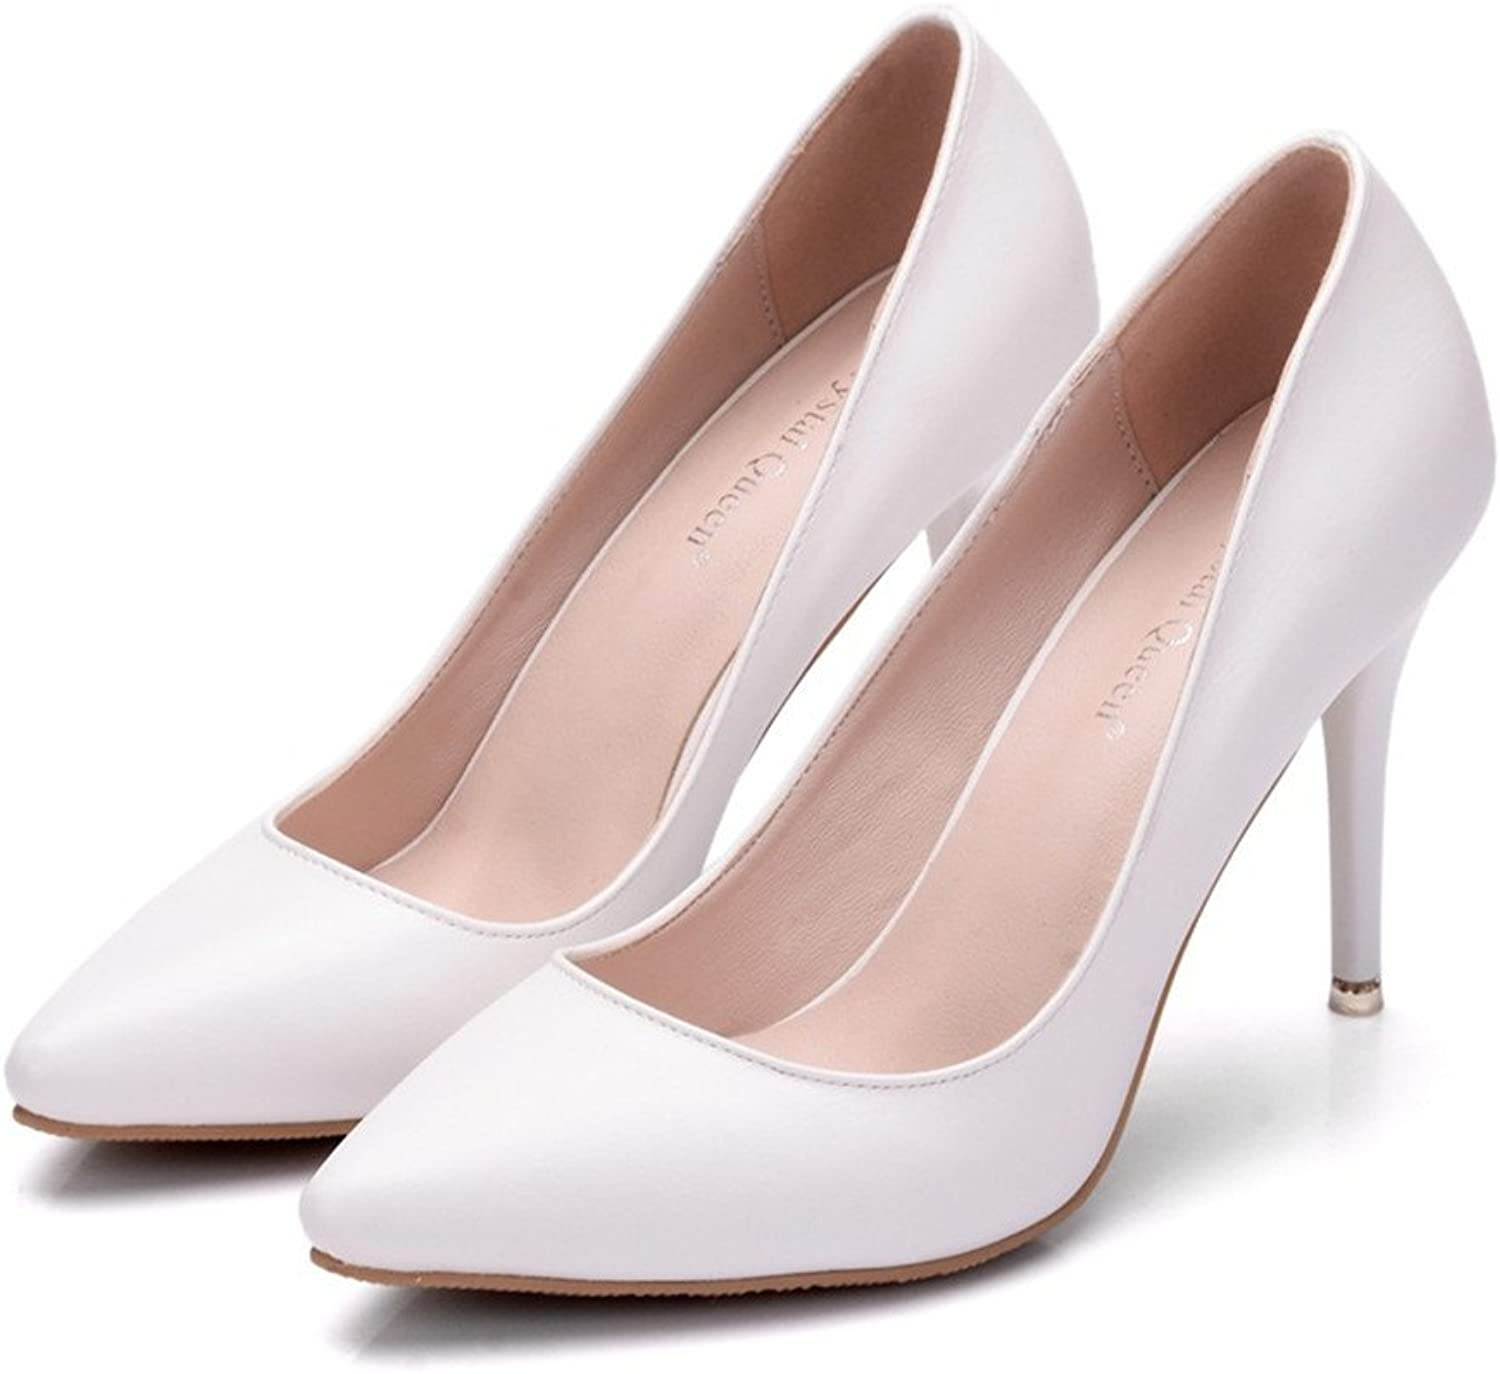 HYP Wedding Women shoes Wedding shoes Women Pumps Closed Toe Wedding Party Court shoes Bridesmaid Bridal shoes Tip high-Heeled Single shoes